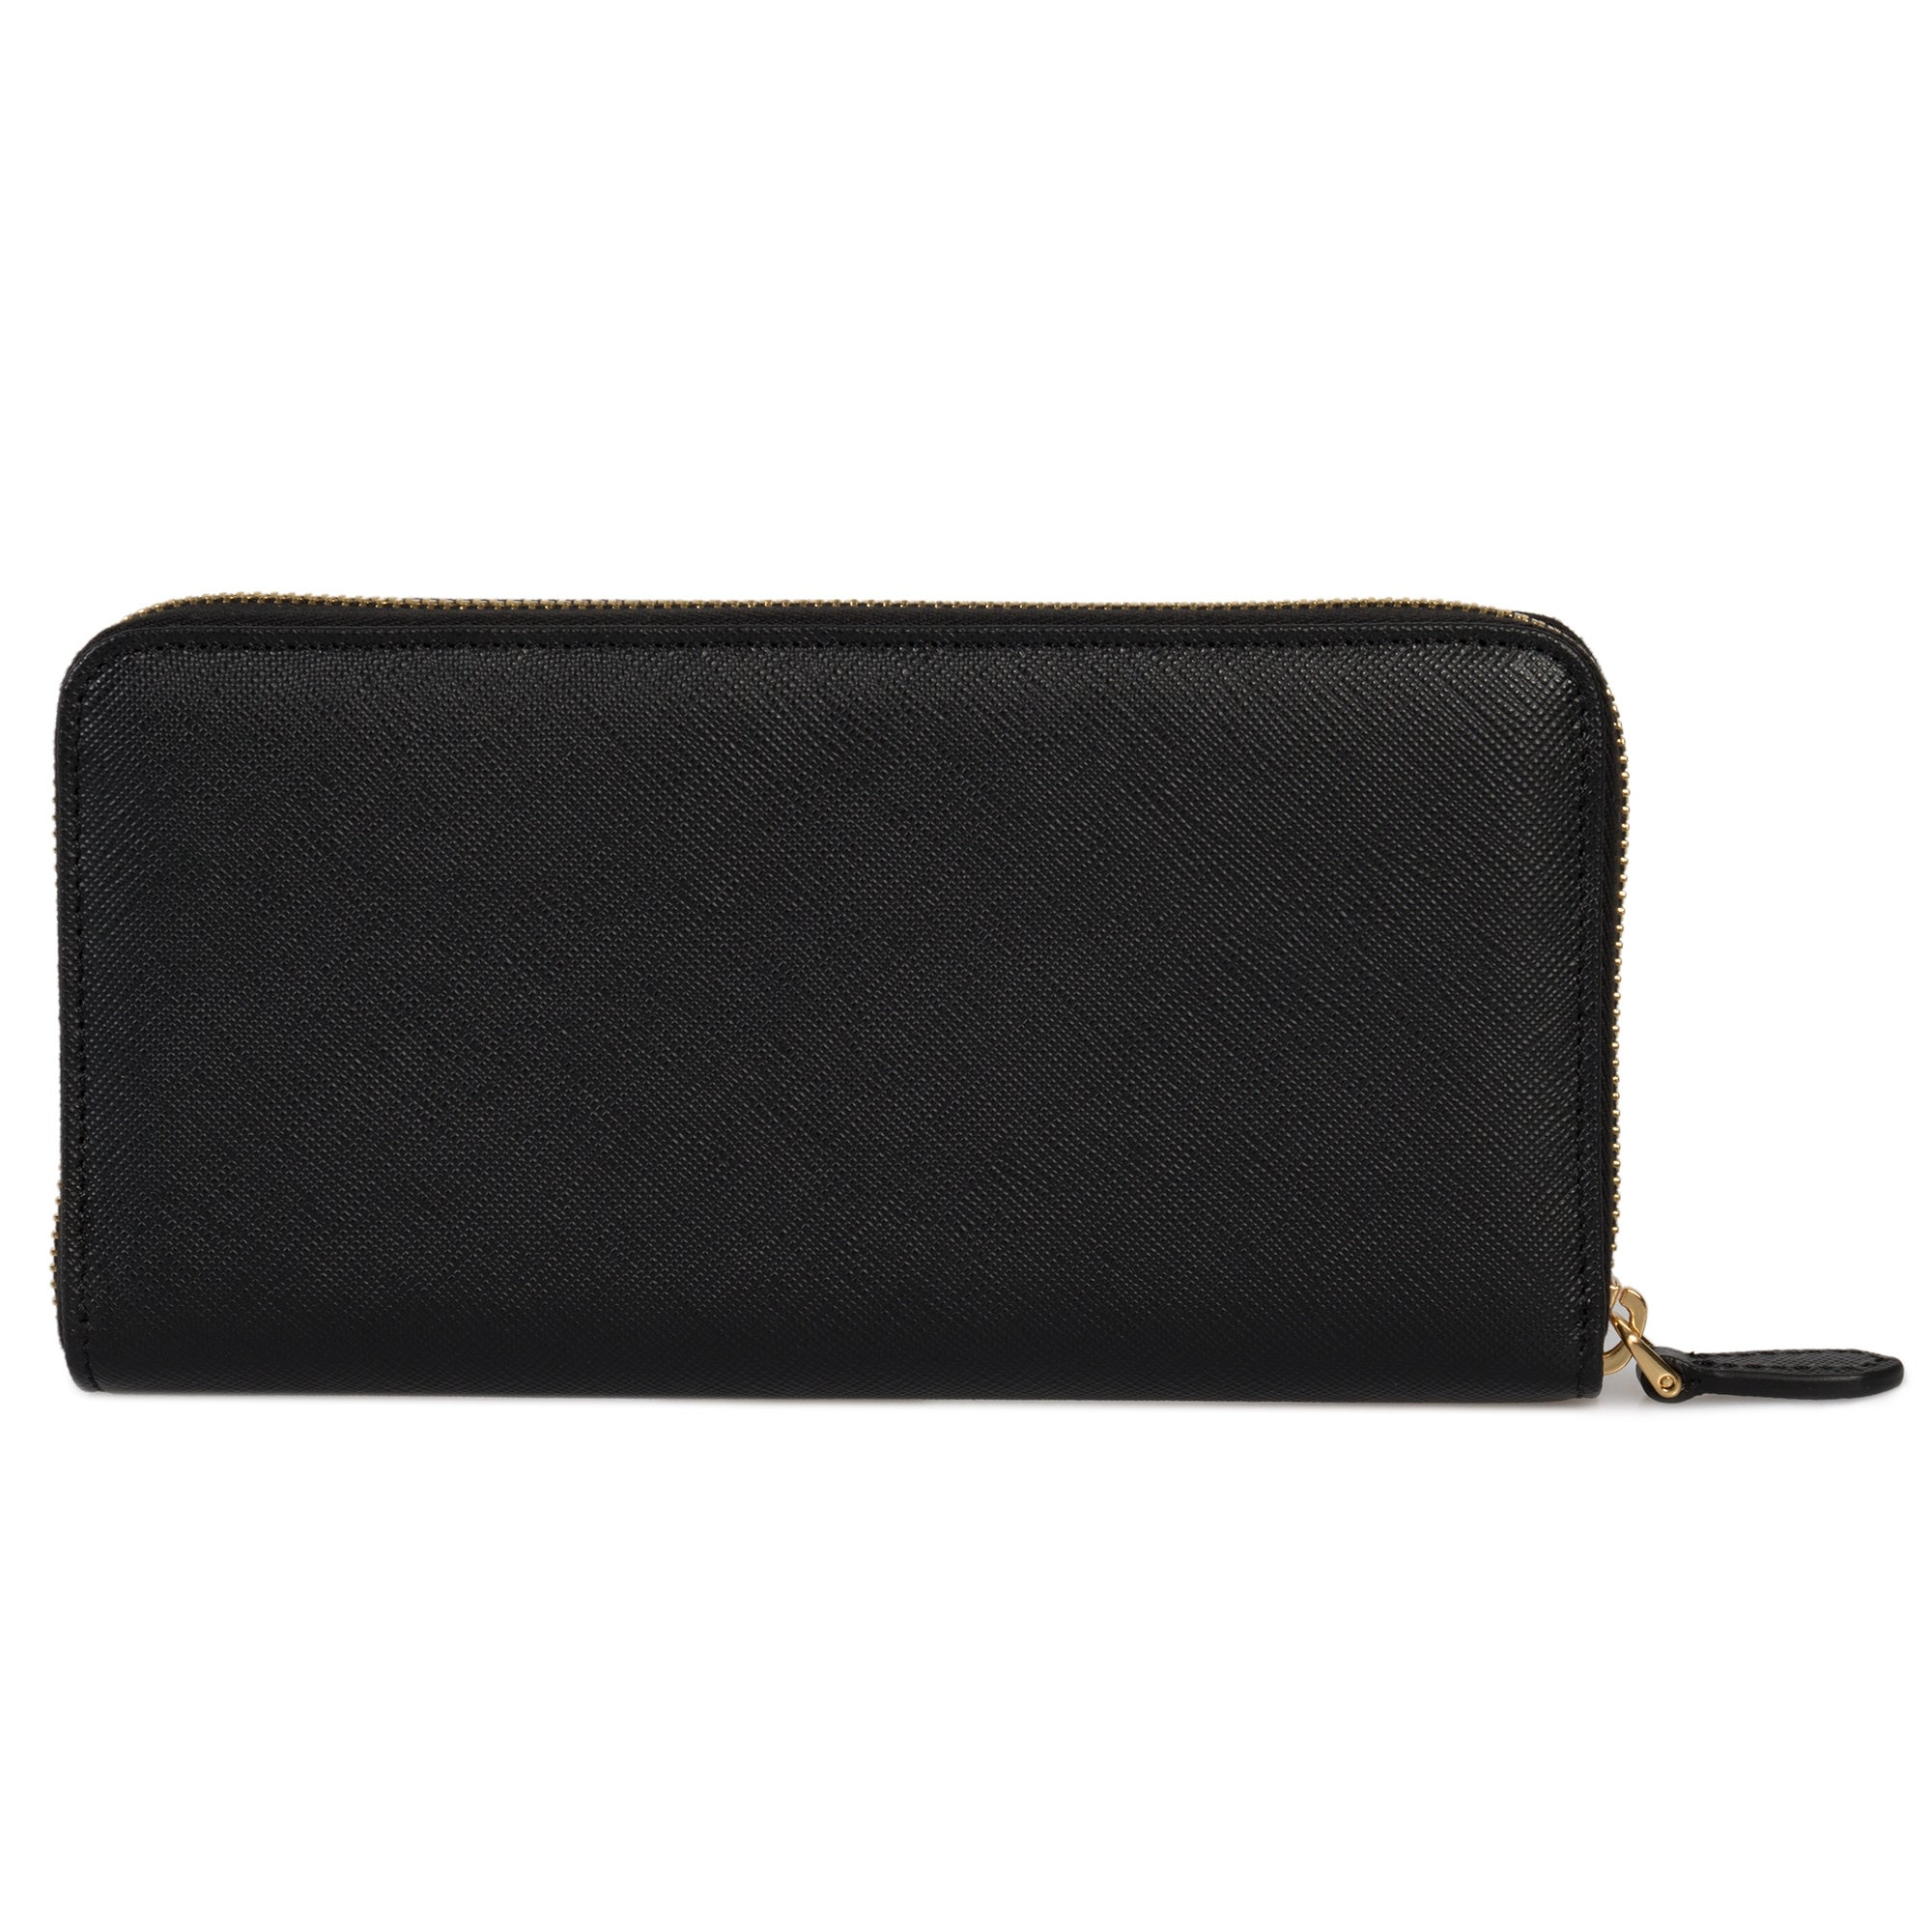 b128abb7322c Shop Prada Black Saffiano Leather Zip-Up Wallet 1ML506 QWA F0002 - Free  Shipping Today - Overstock - 23083764